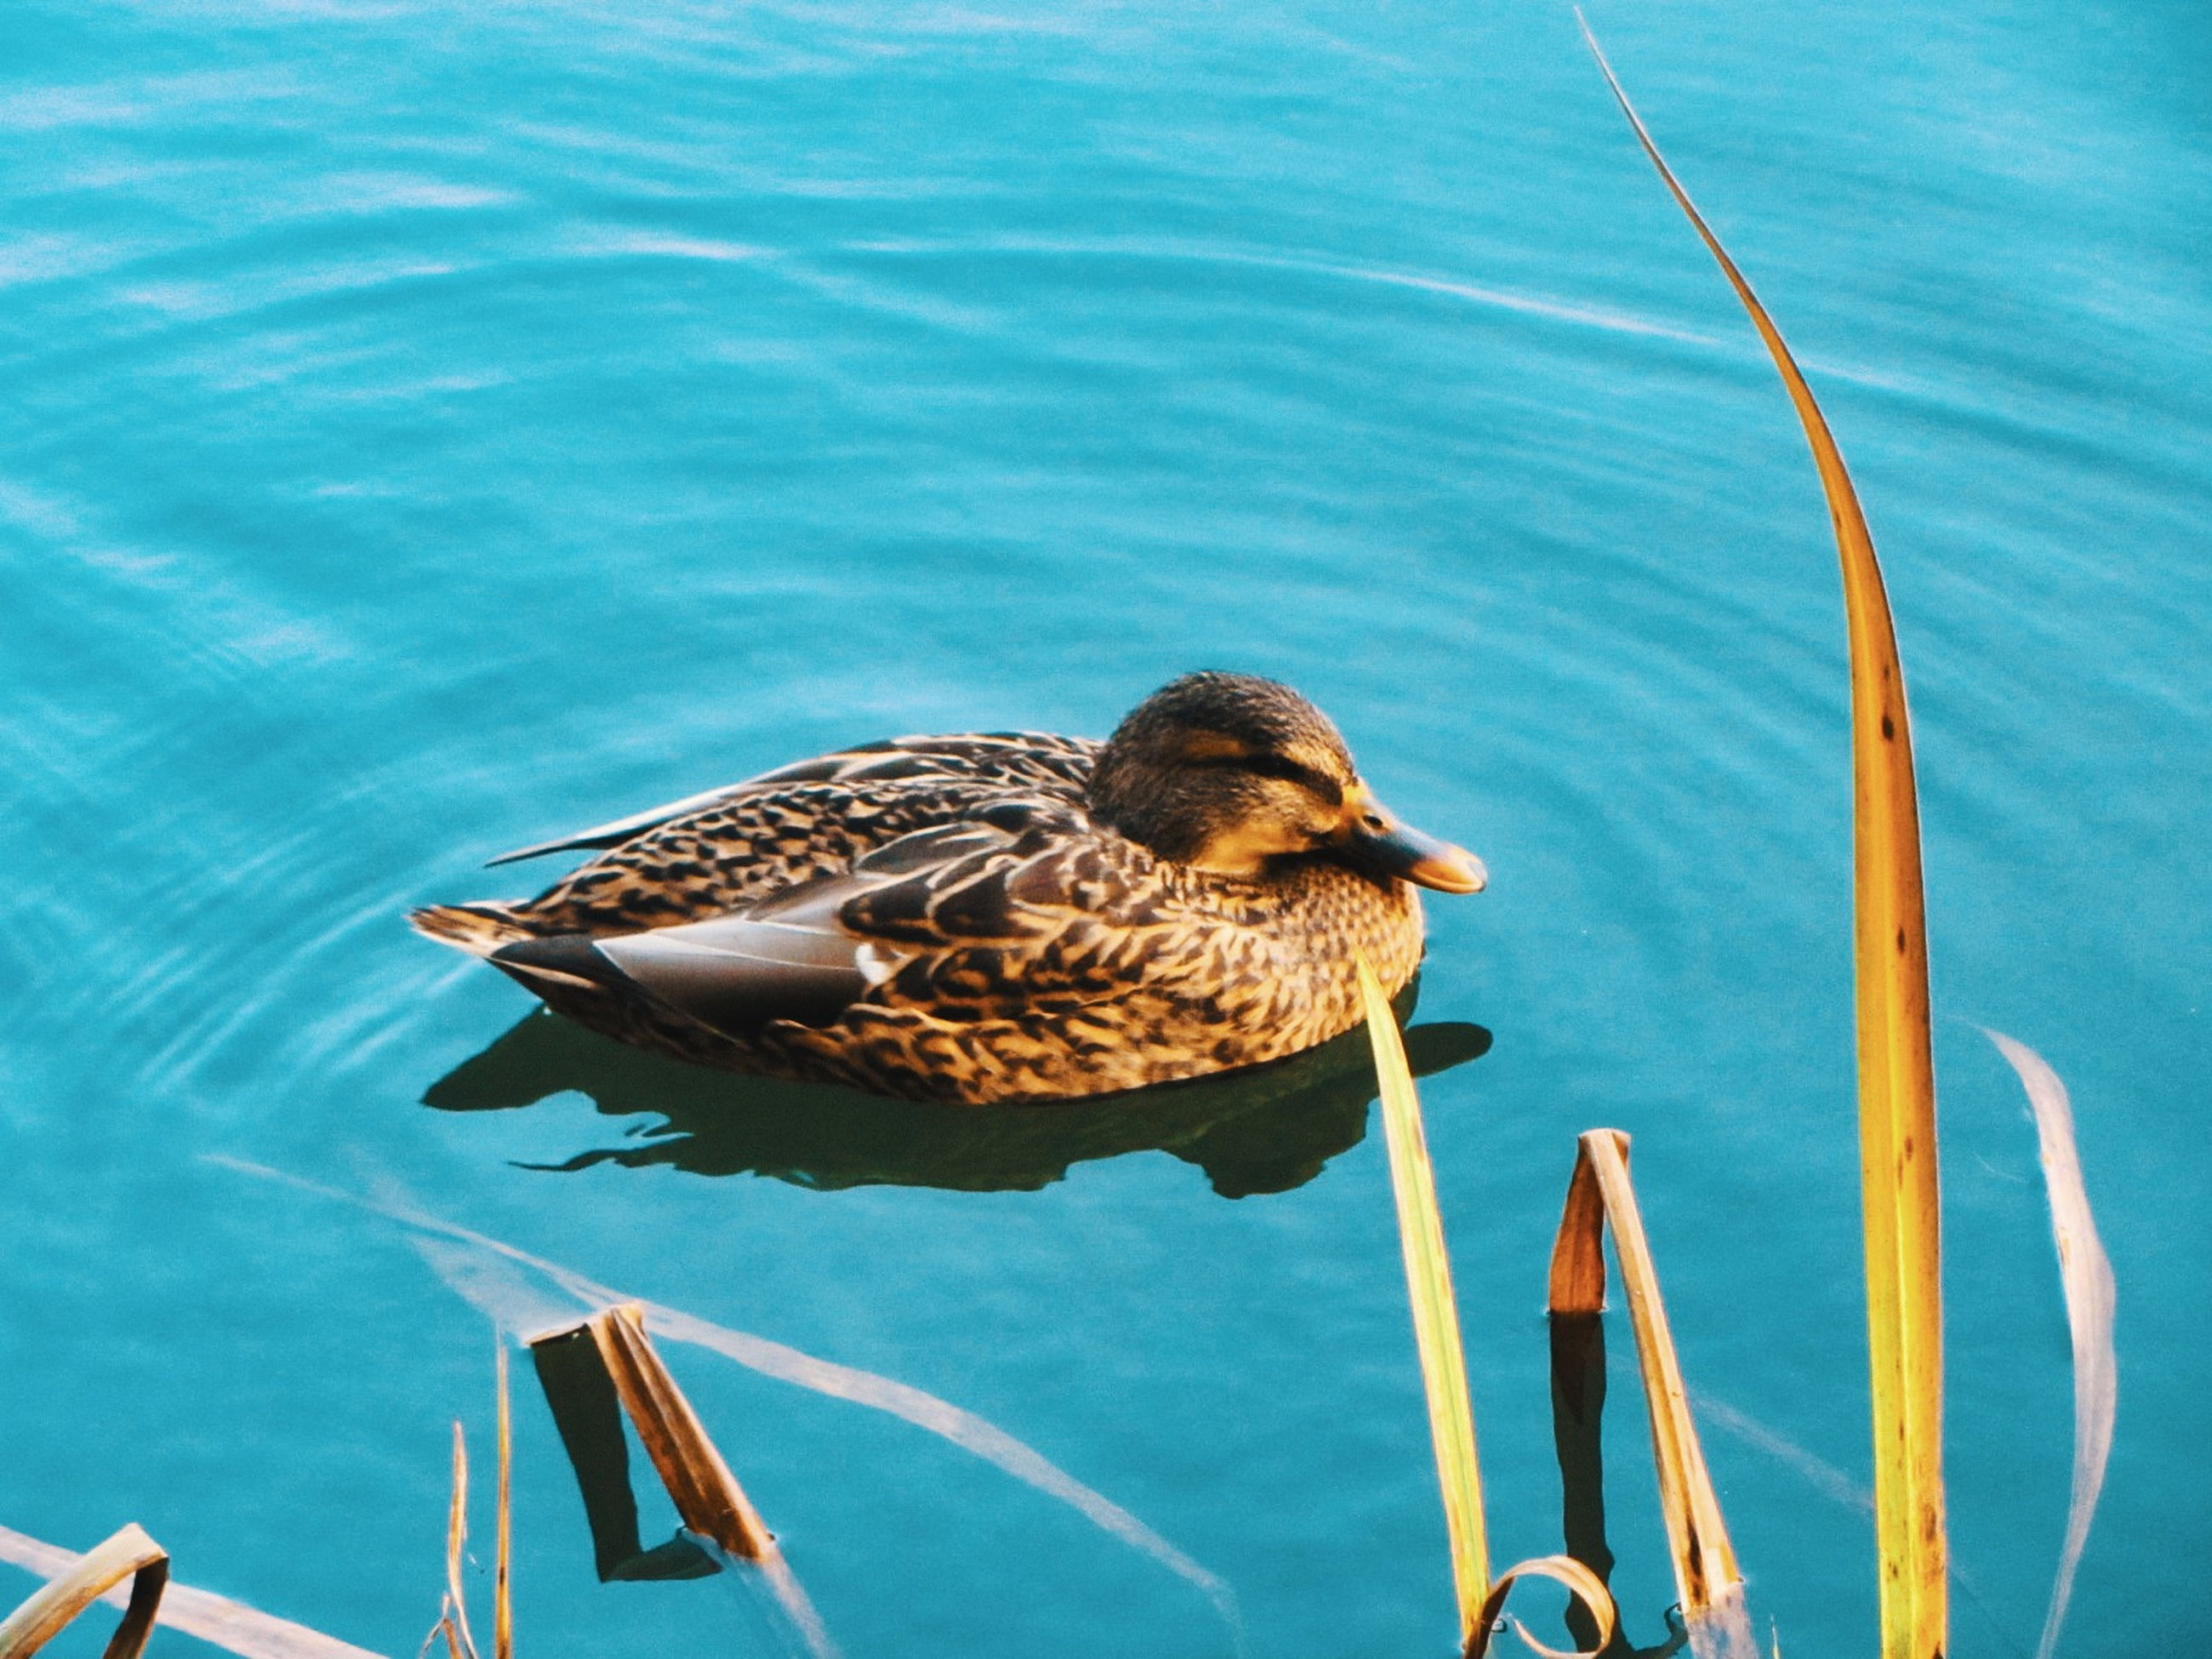 animal themes, animal, duck, water, animal wildlife, bird, wildlife, water bird, no people, nature, one animal, ducks, geese and swans, mallard, lake, high angle view, day, mallard duck, swimming, outdoors, poultry, blue